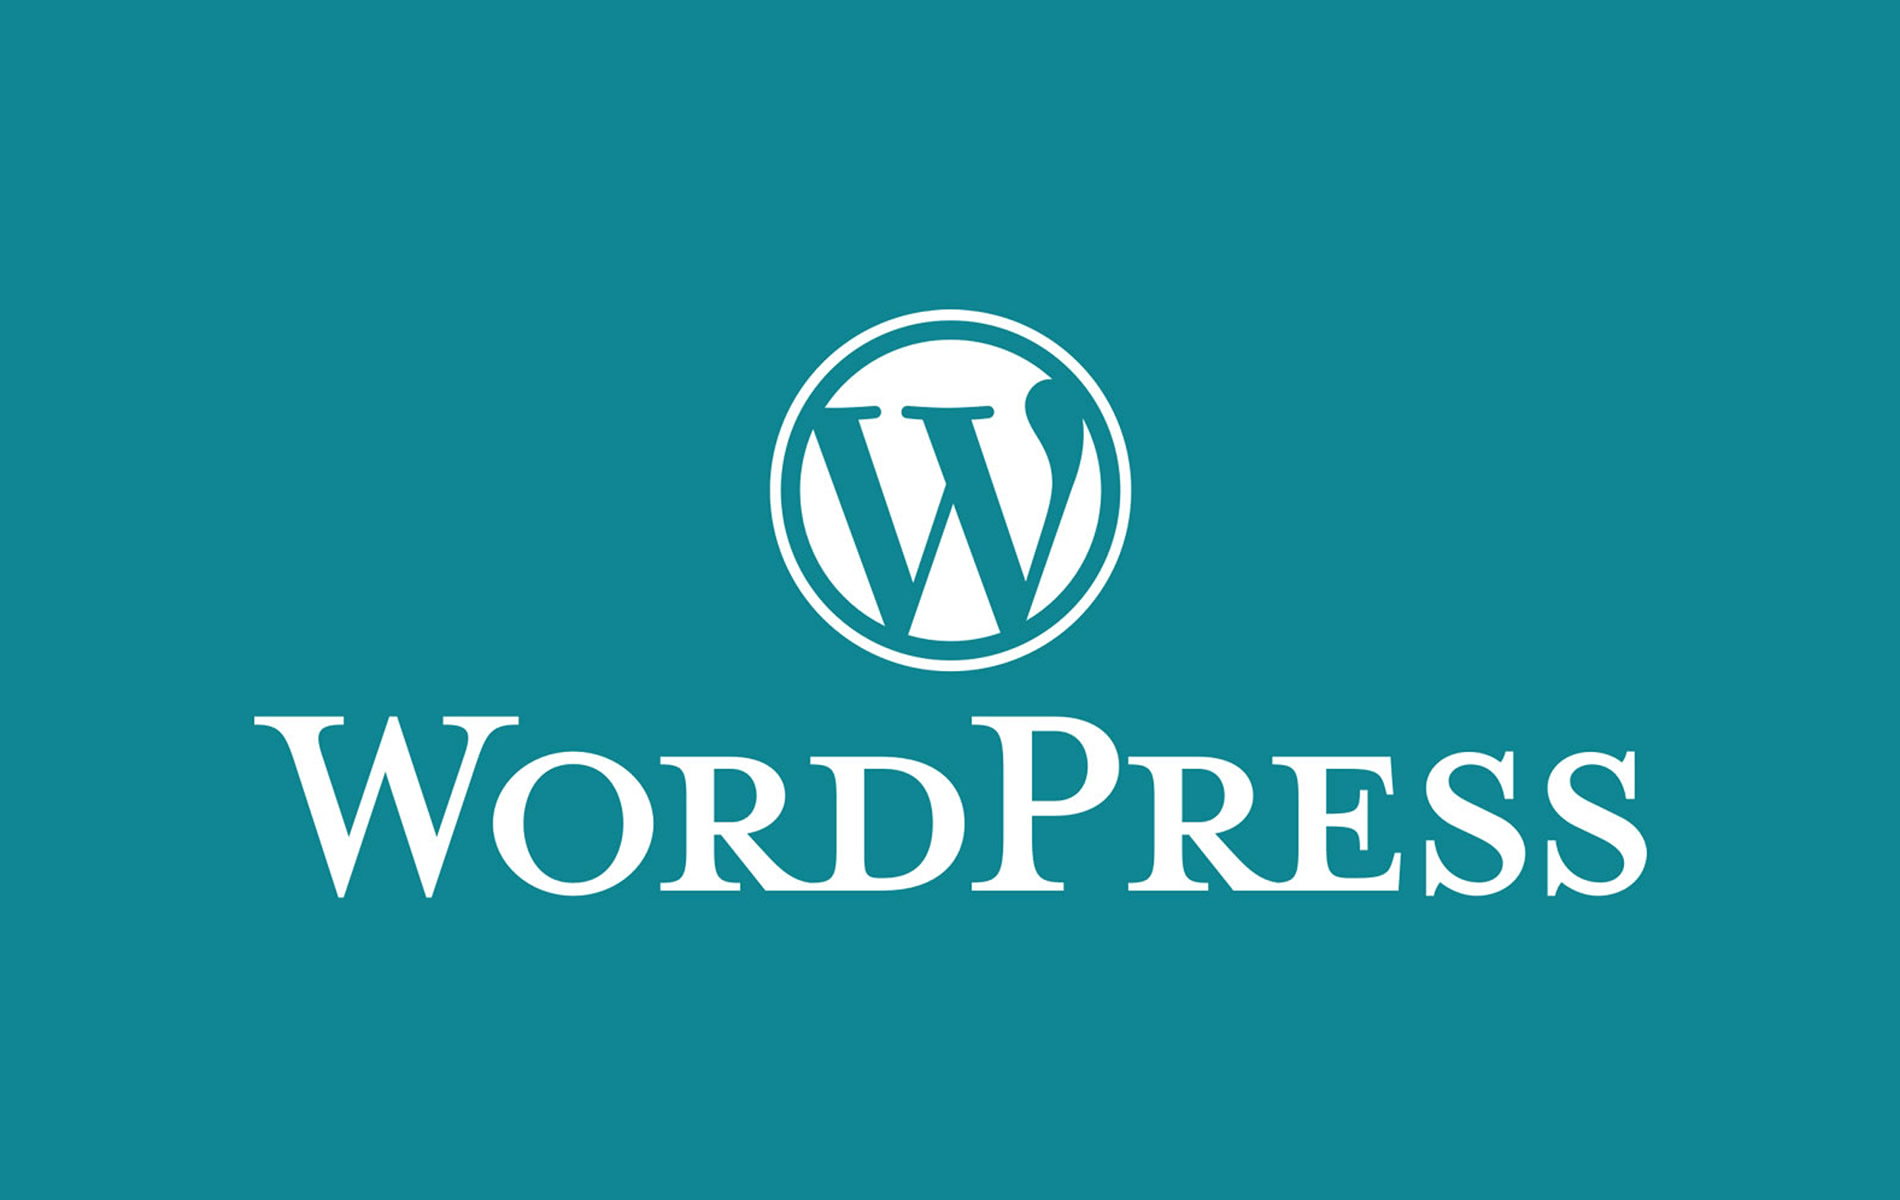 WordPress for Small Businesses image